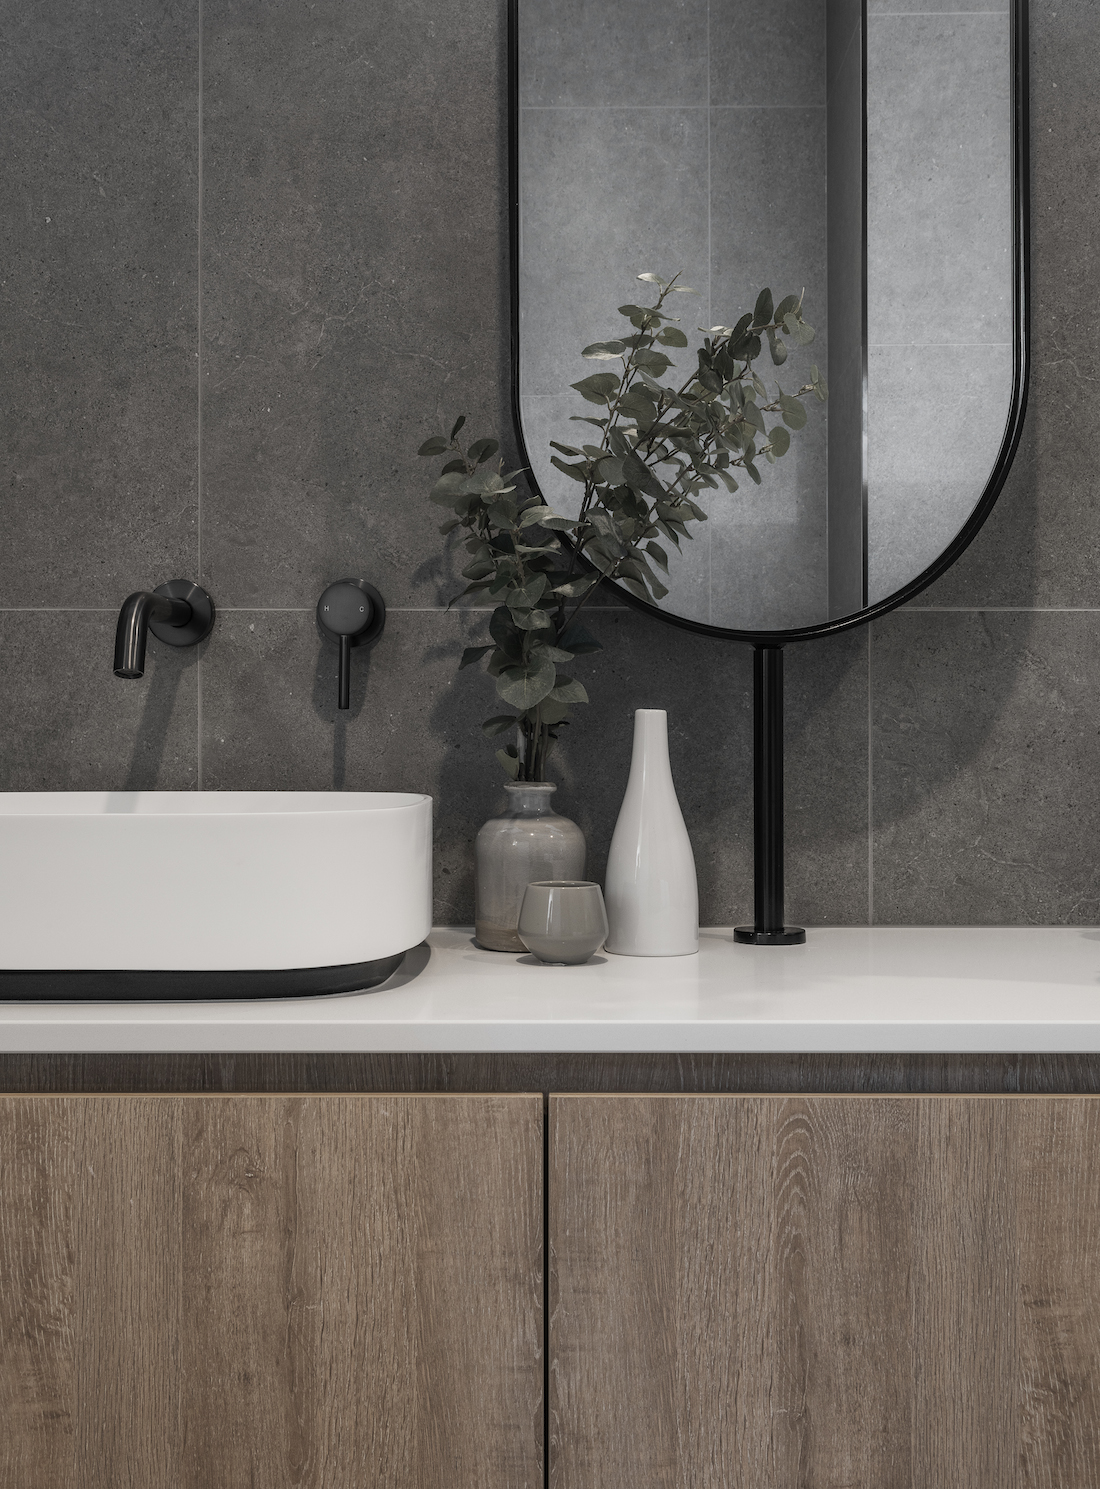 Timber vanity with oval mirror